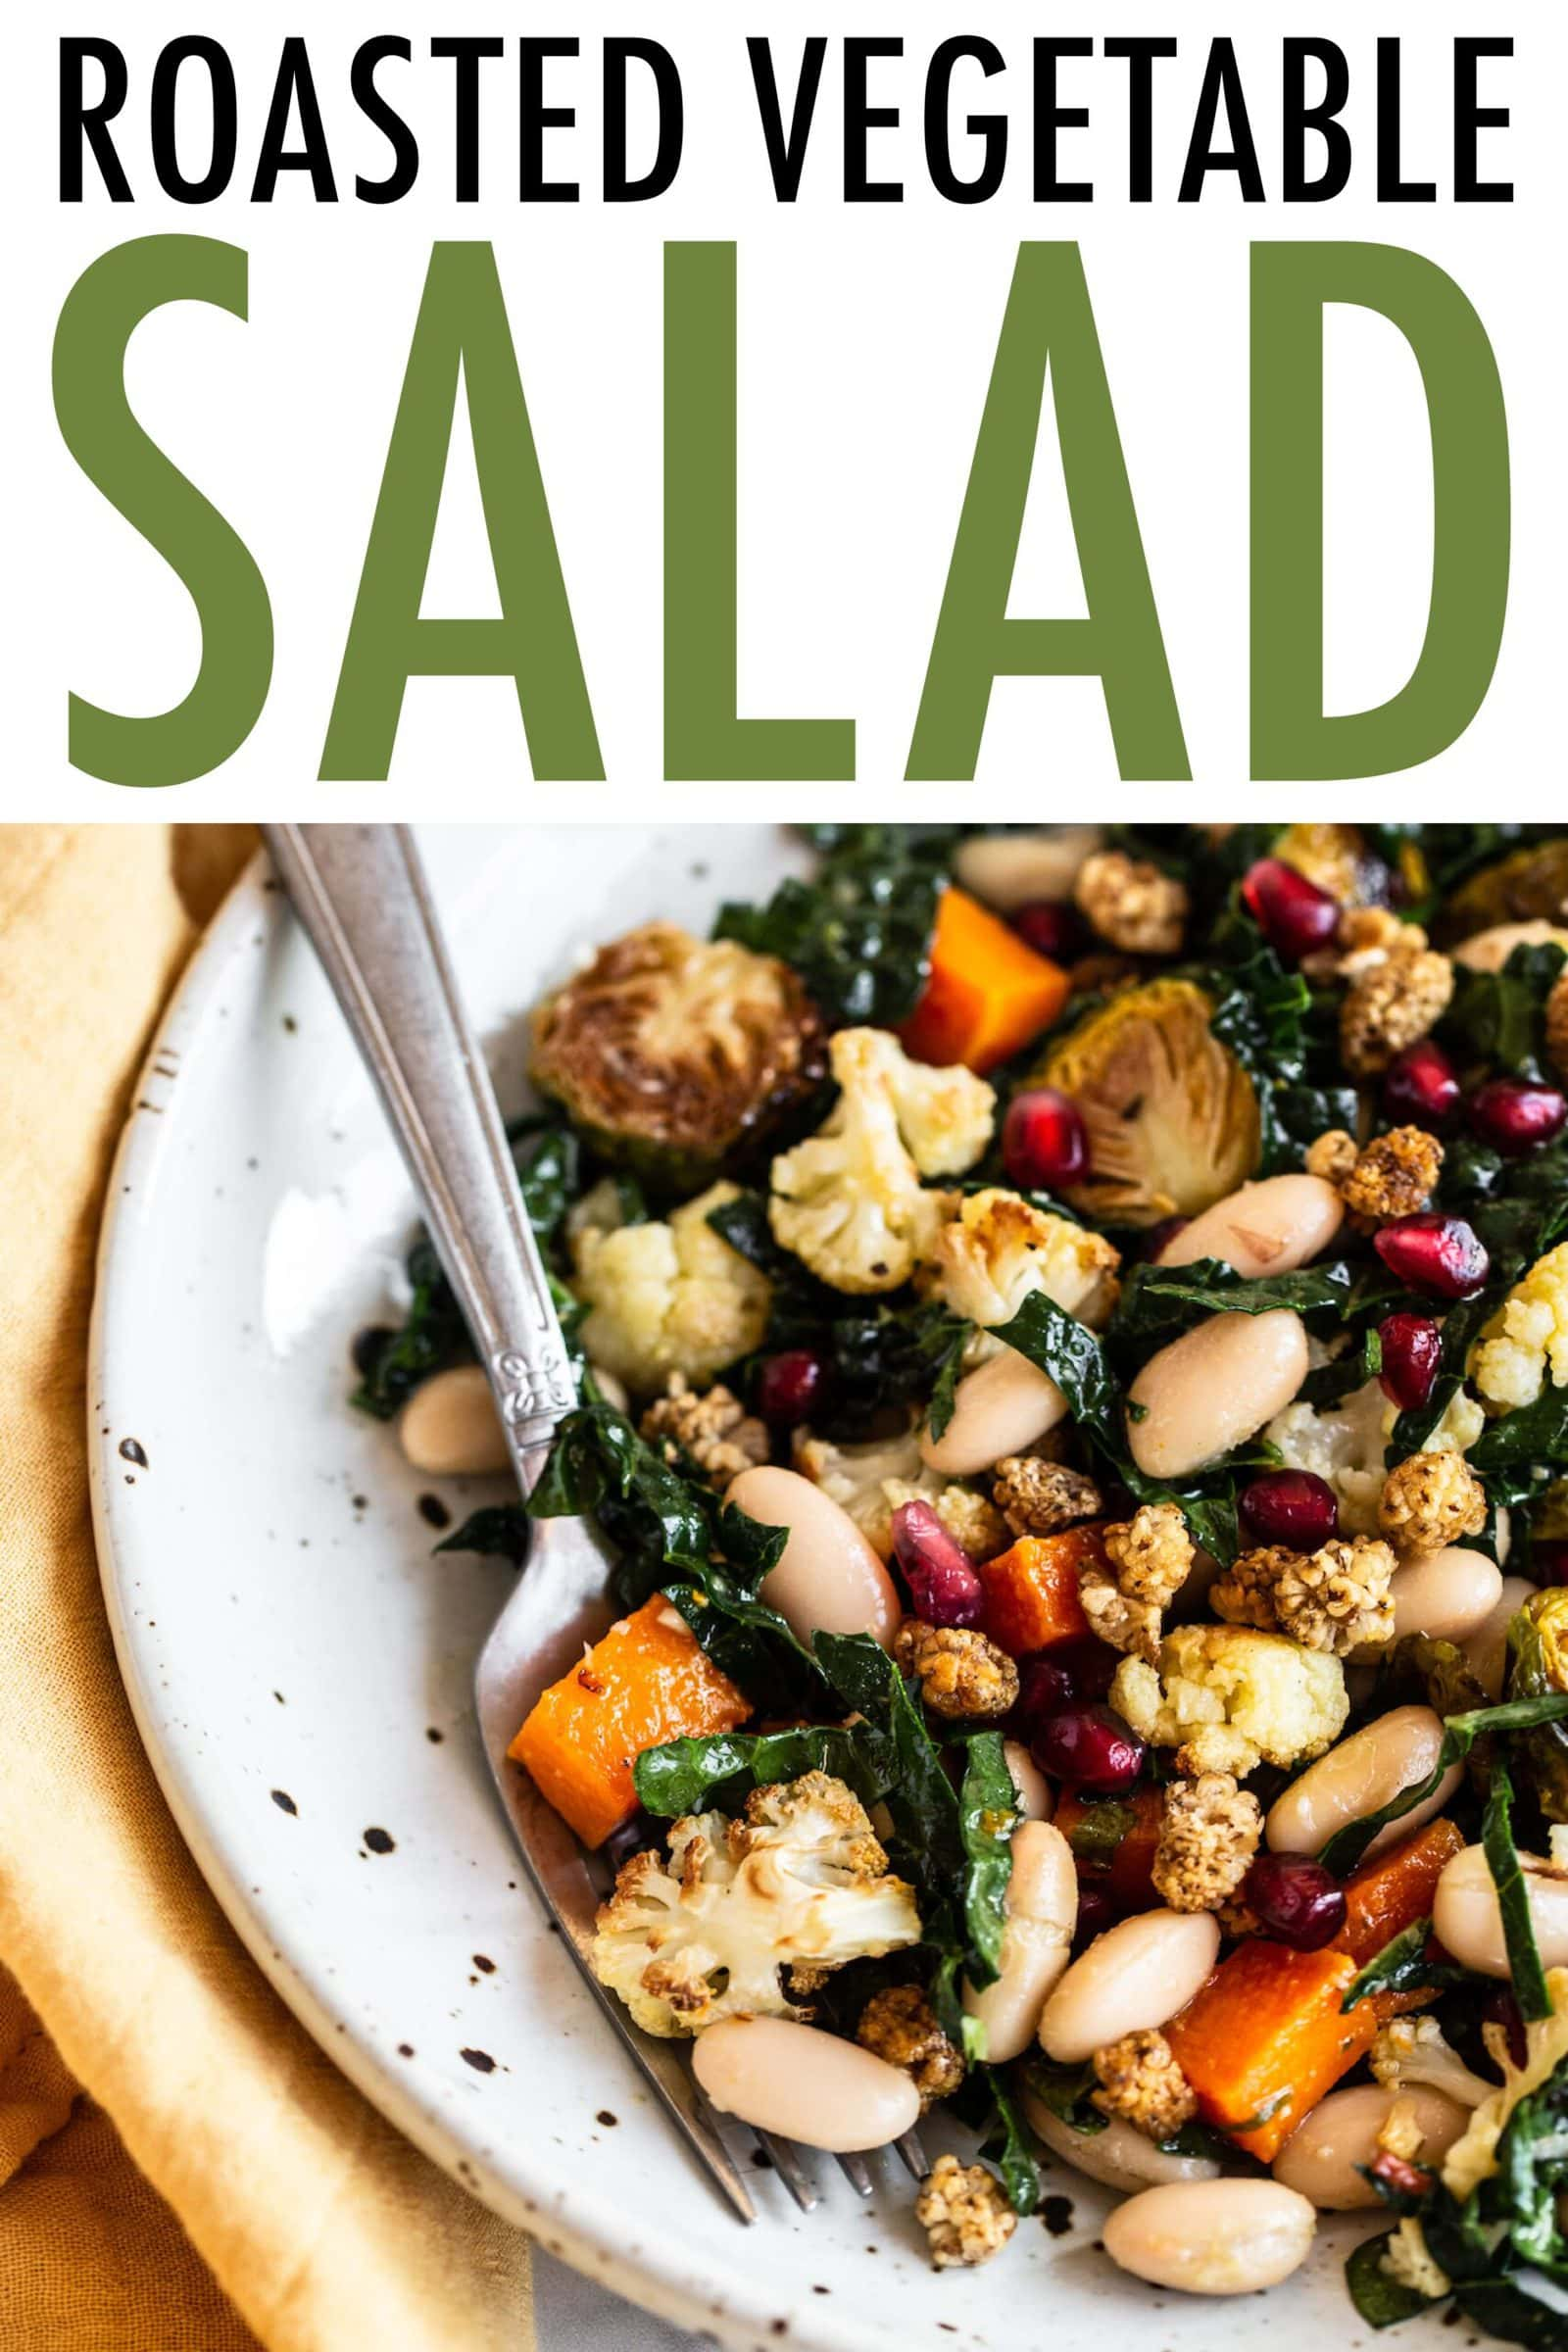 Bowl with roasted vegetable salad with kale and beans.